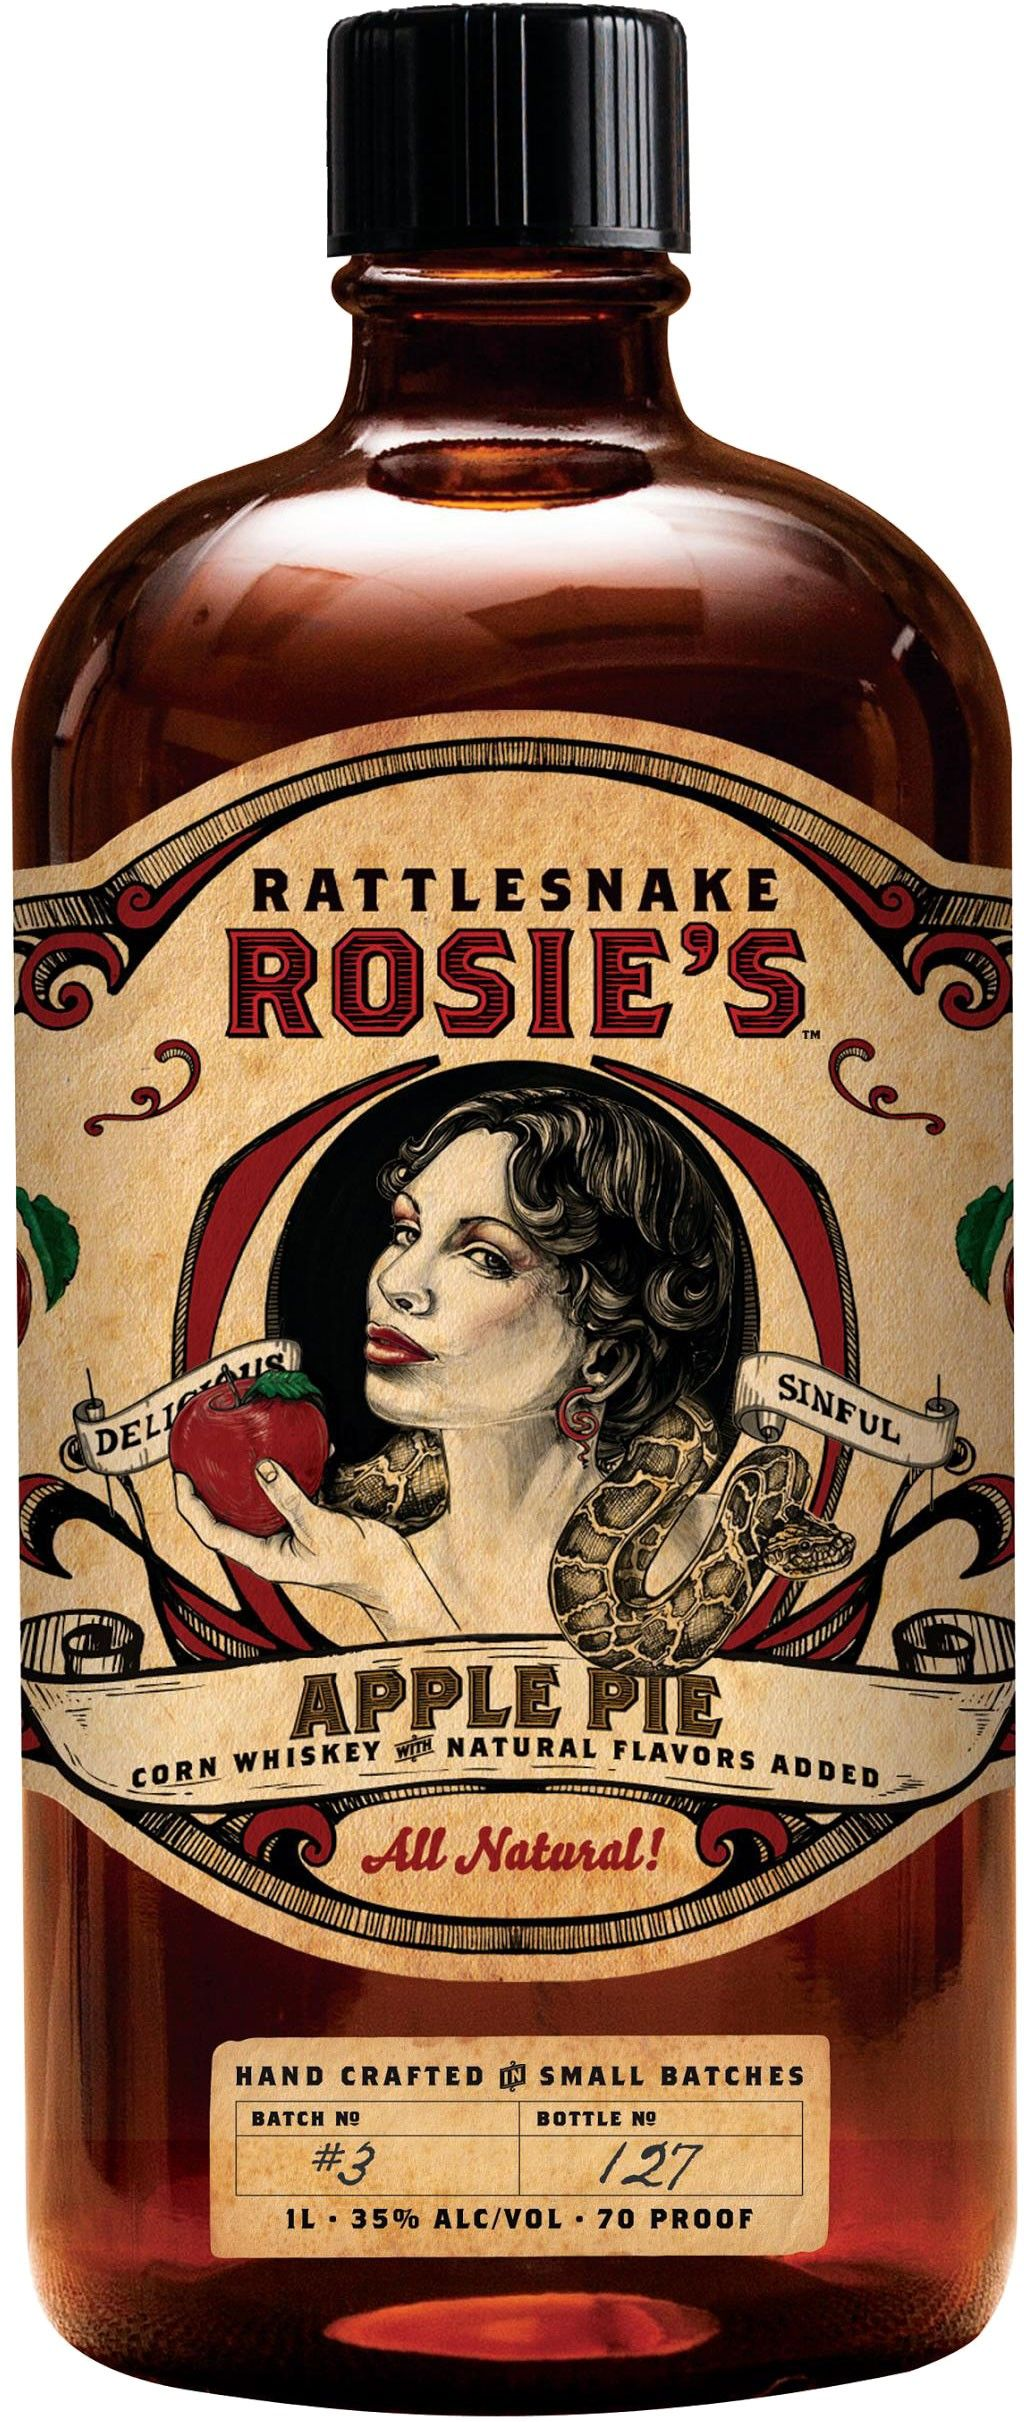 Made from 100% corn whiskey mixed with local New York apple cider, cinnamon, vanilla and brown sugar, Rattlesnake Rosie's Apple Pie Whiskey is an updated take on the traditional apple pie moonshines which have been around for generations.